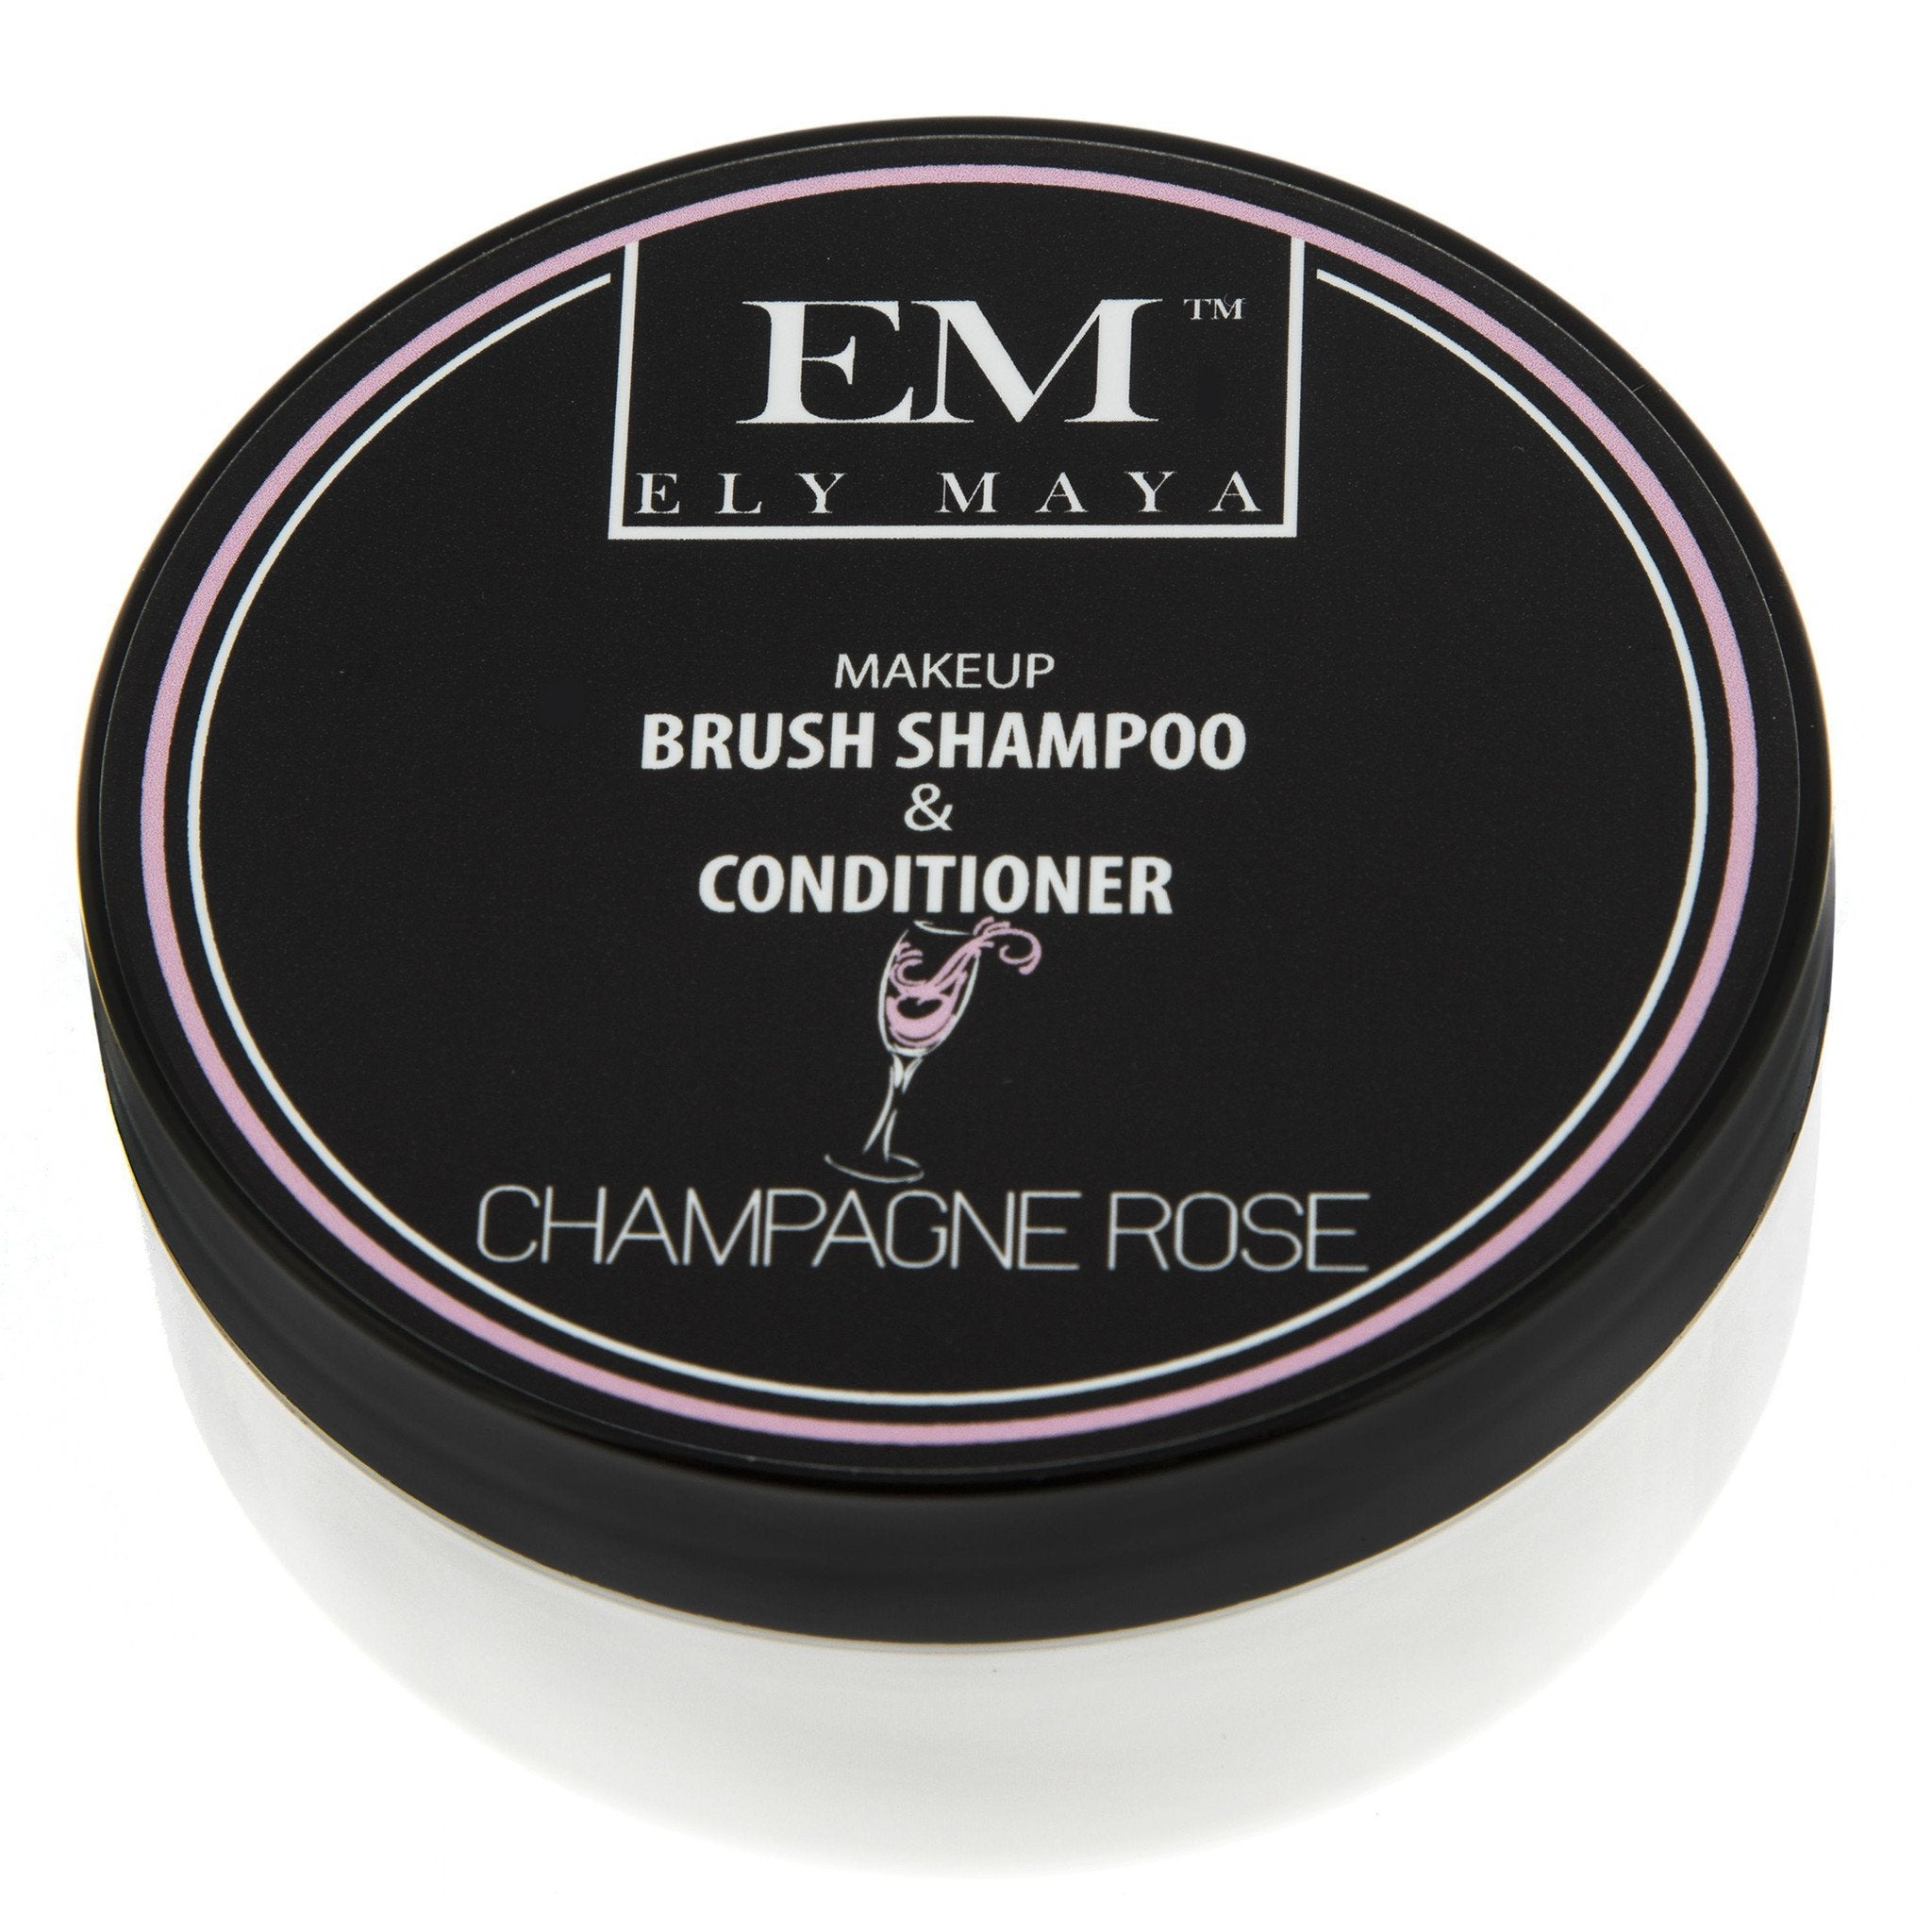 ELY MAYA - BRUSH SHAMPOO AND CONDITIONER CHAMPAGNE ROSE